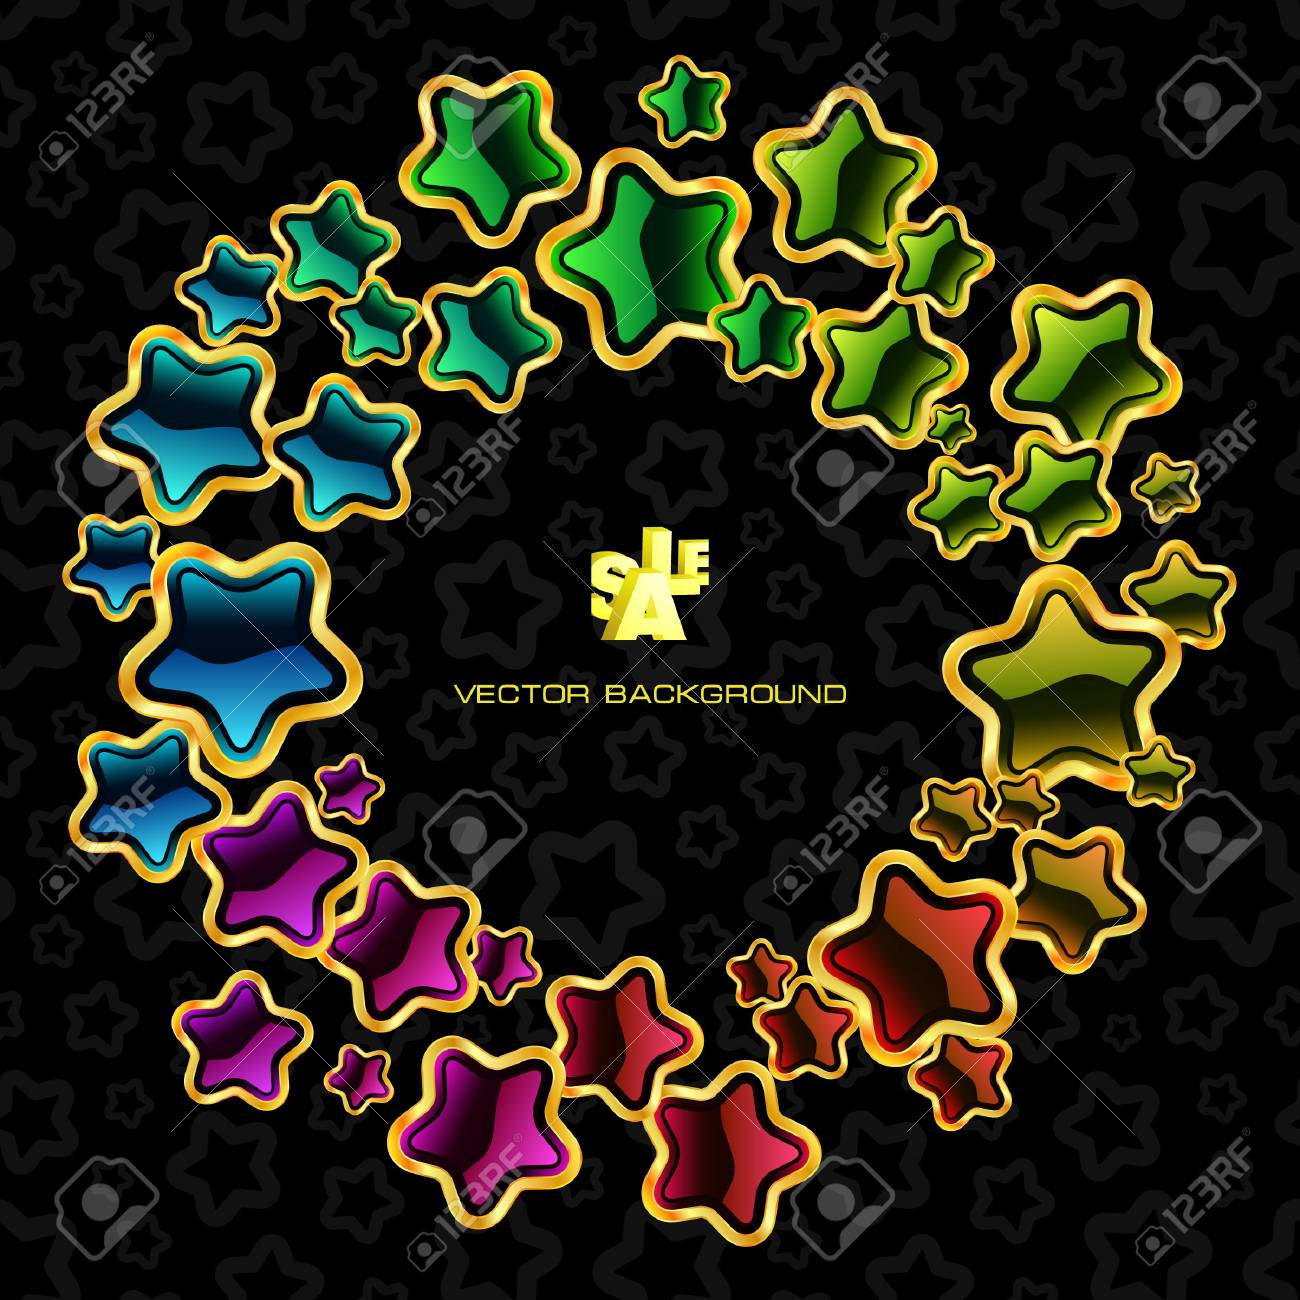 Abstract background with stars. Stock Vector - 7800768